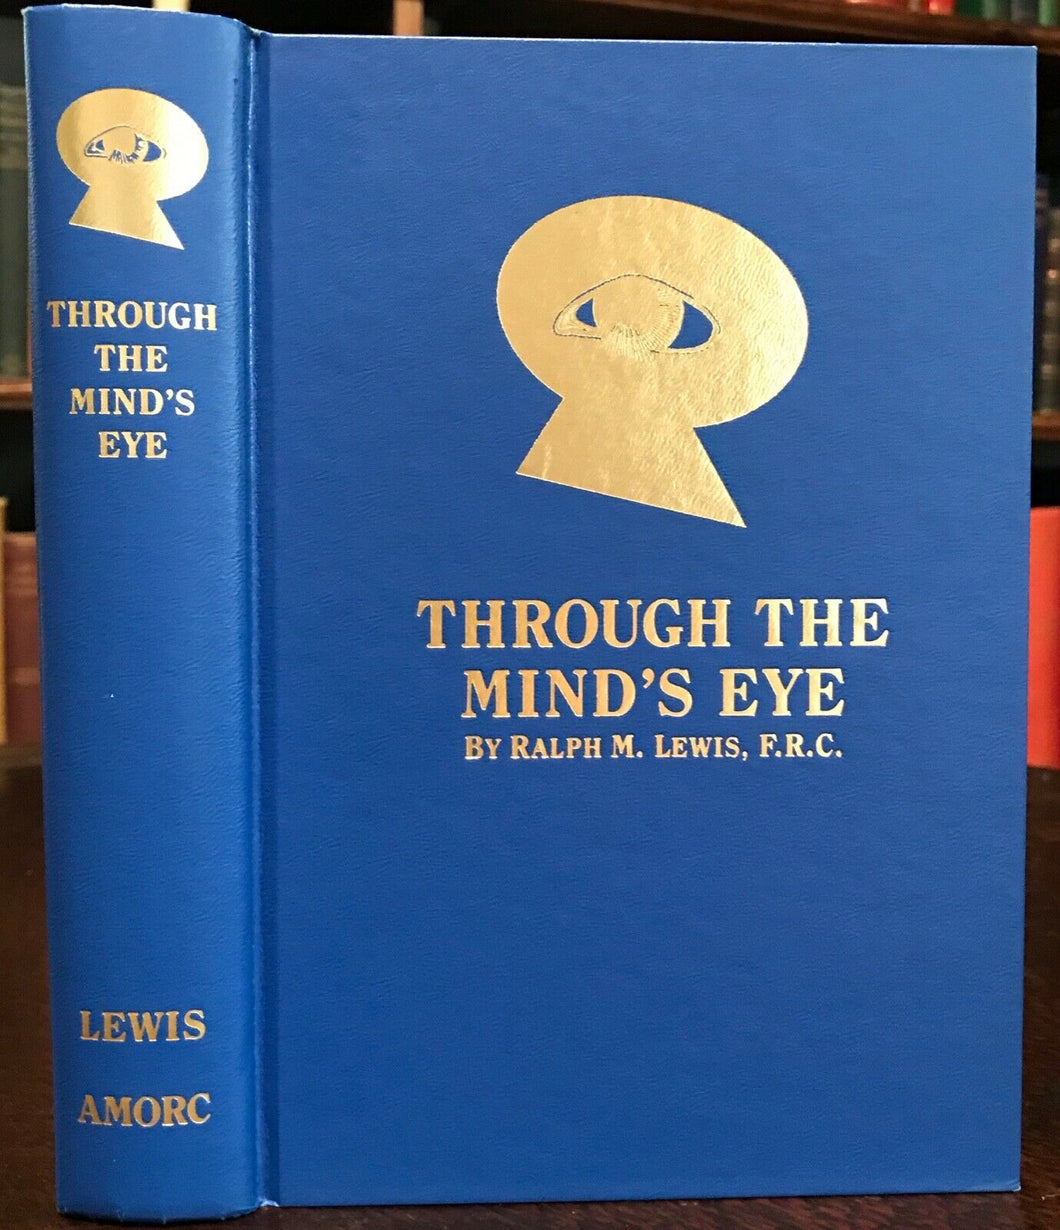 THROUGH THE MIND'S EYE - Lewis - ROSICRUCIAN FATE DESTINY KARMA SOUL MYSTICISM